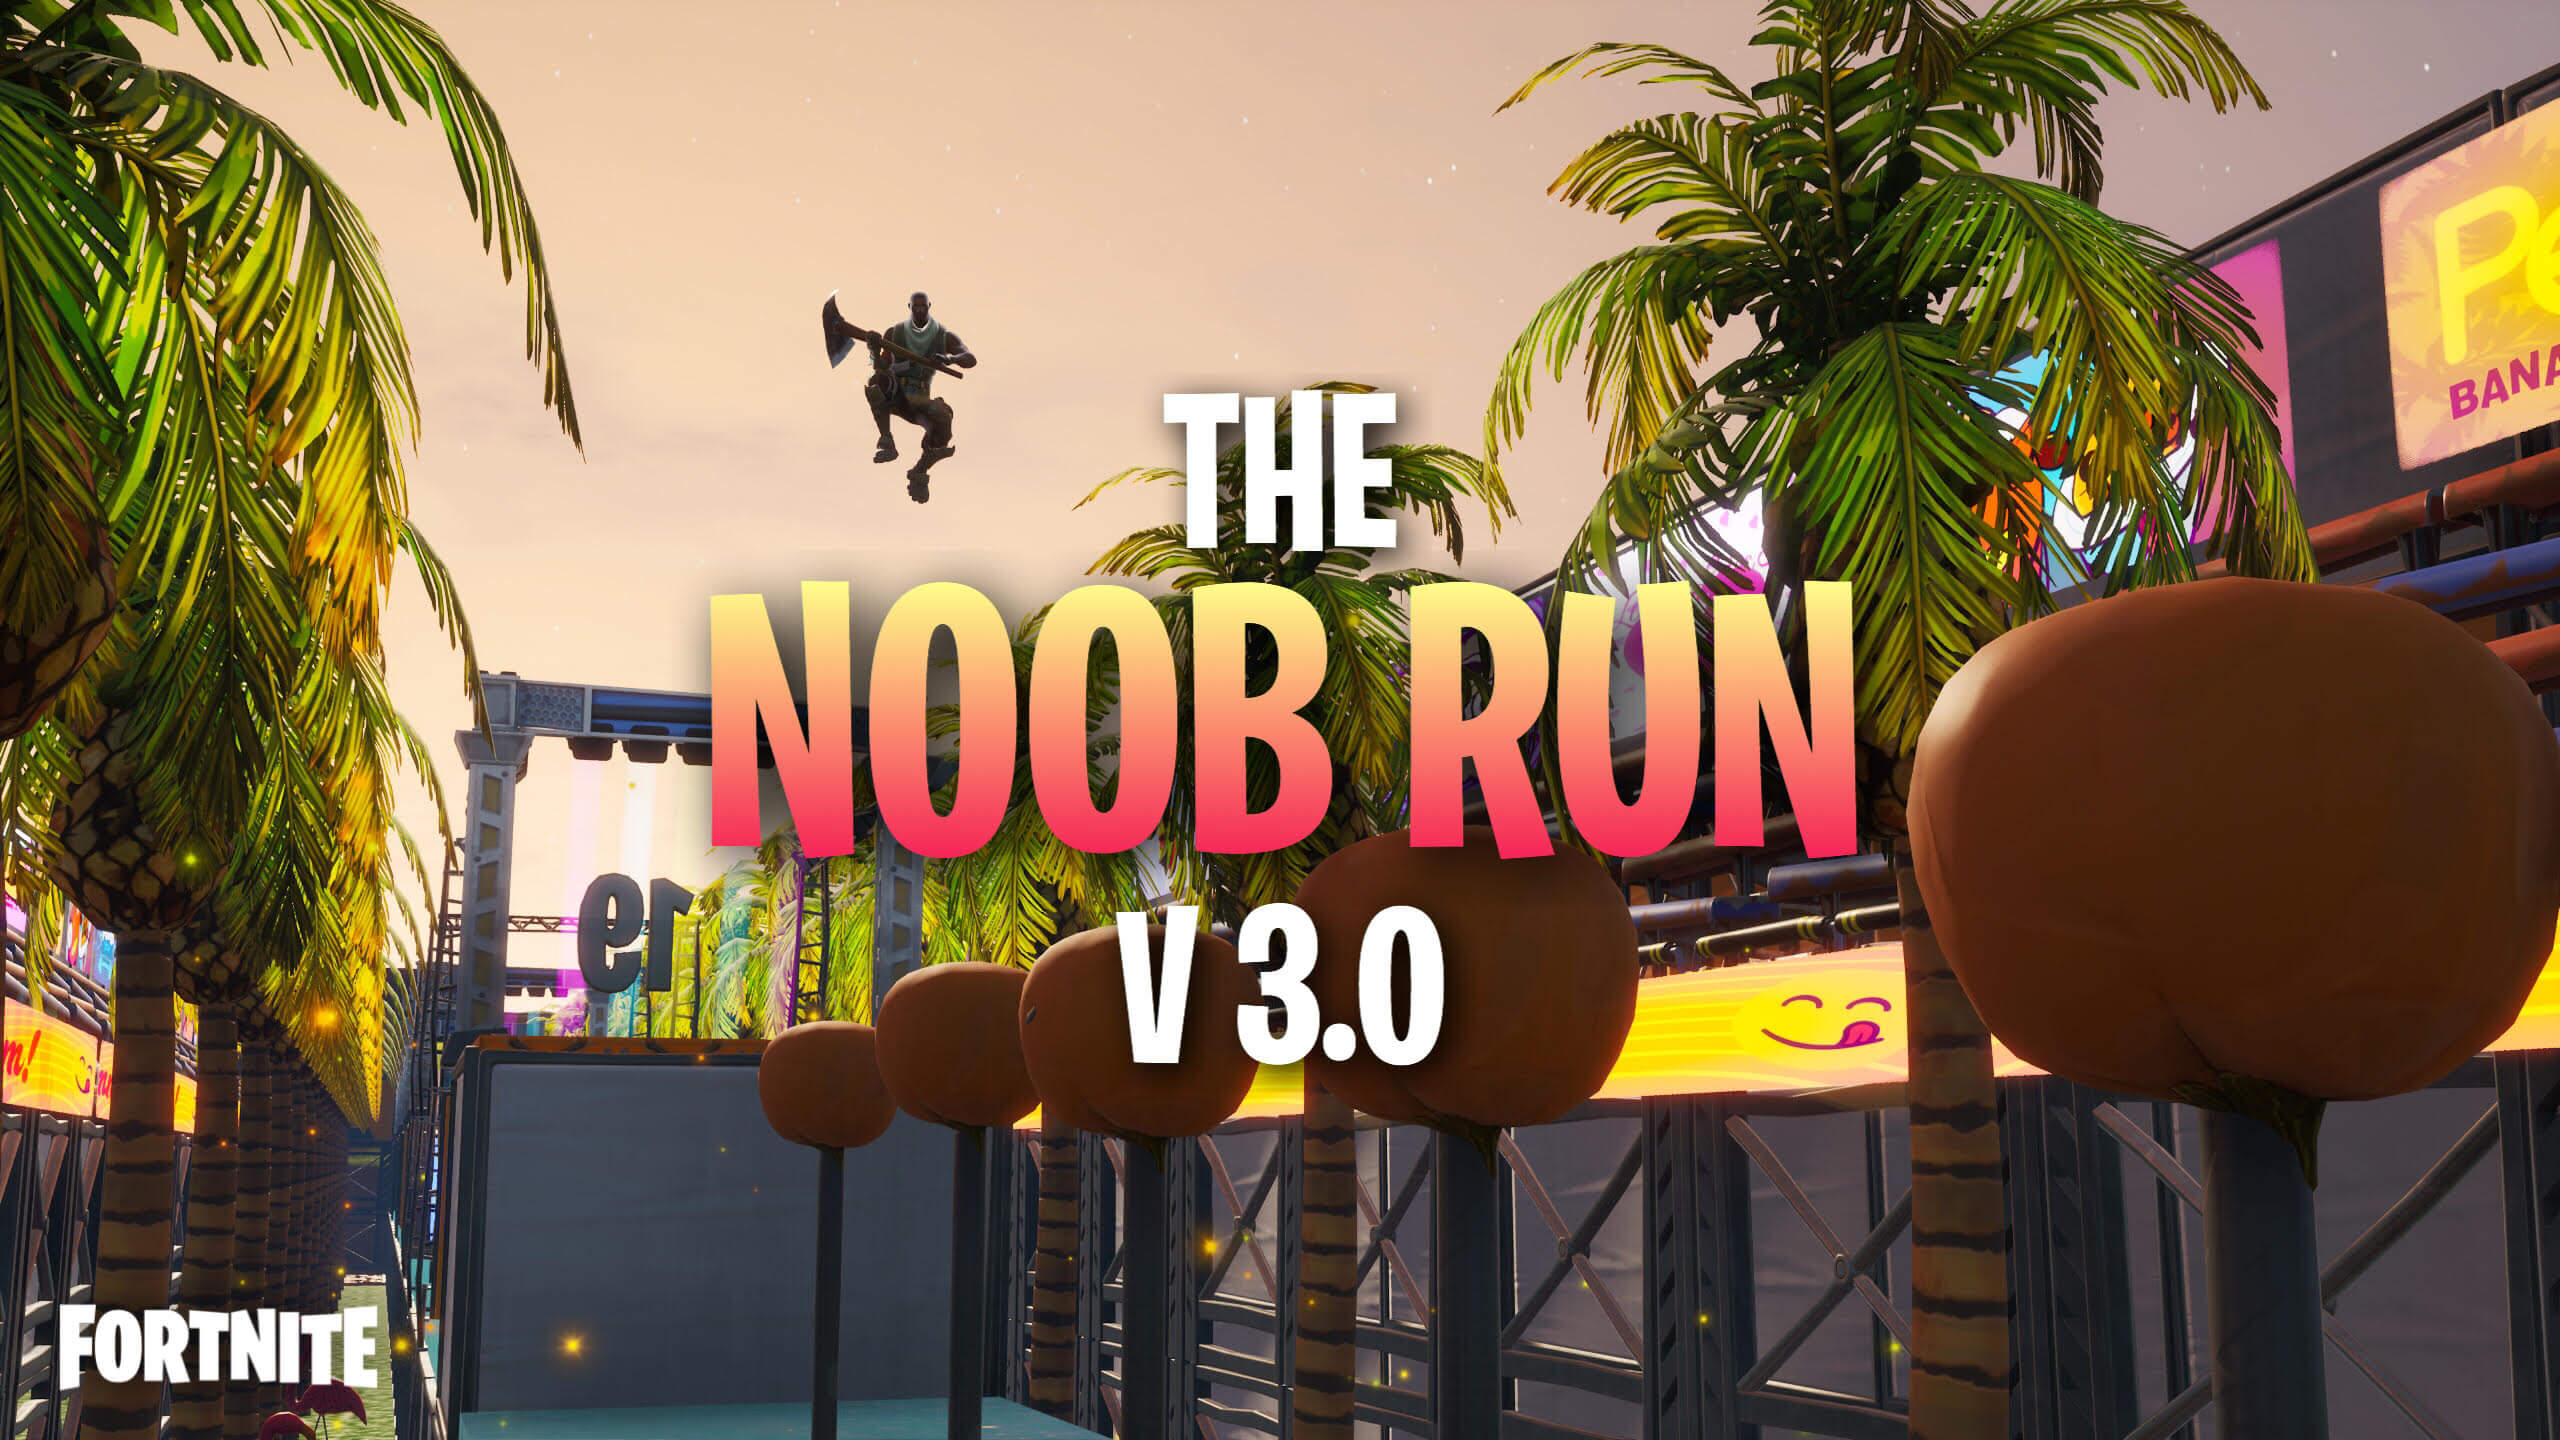 THE NOOB RUN 3.0